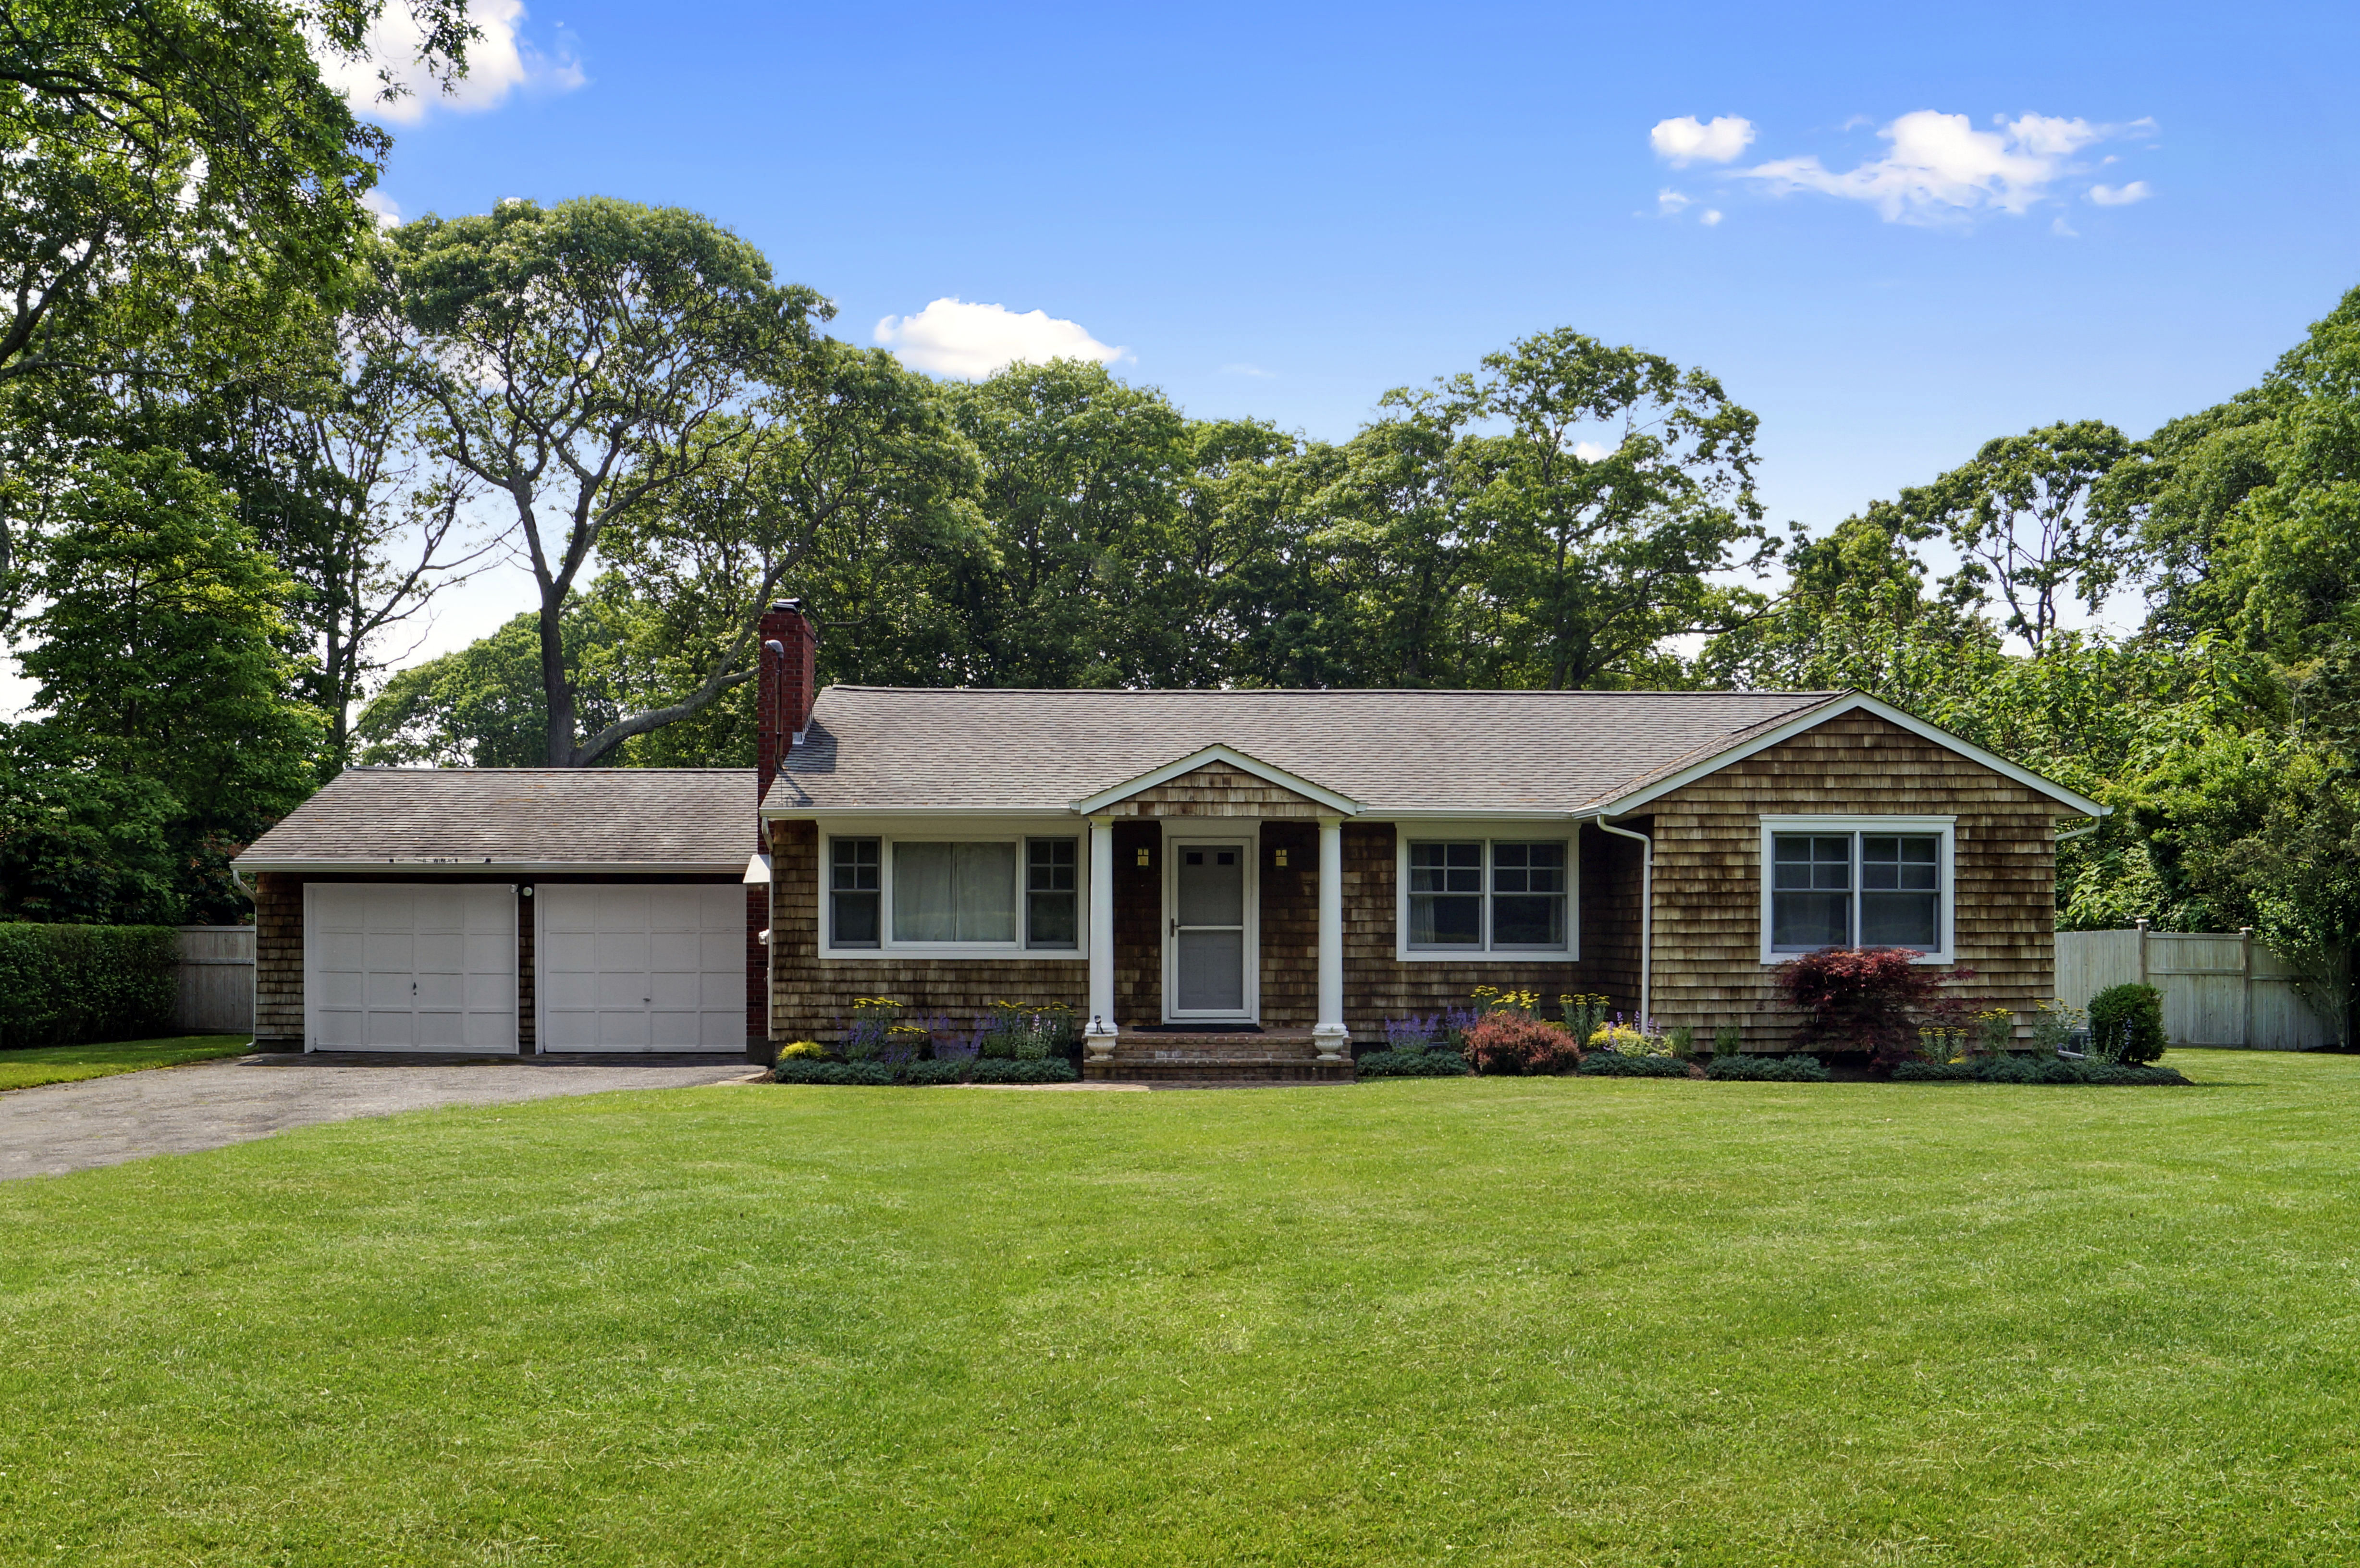 Single Family Home for Sale at Total Privacy 59 Jagger Lane Westhampton, New York, 11977 United States